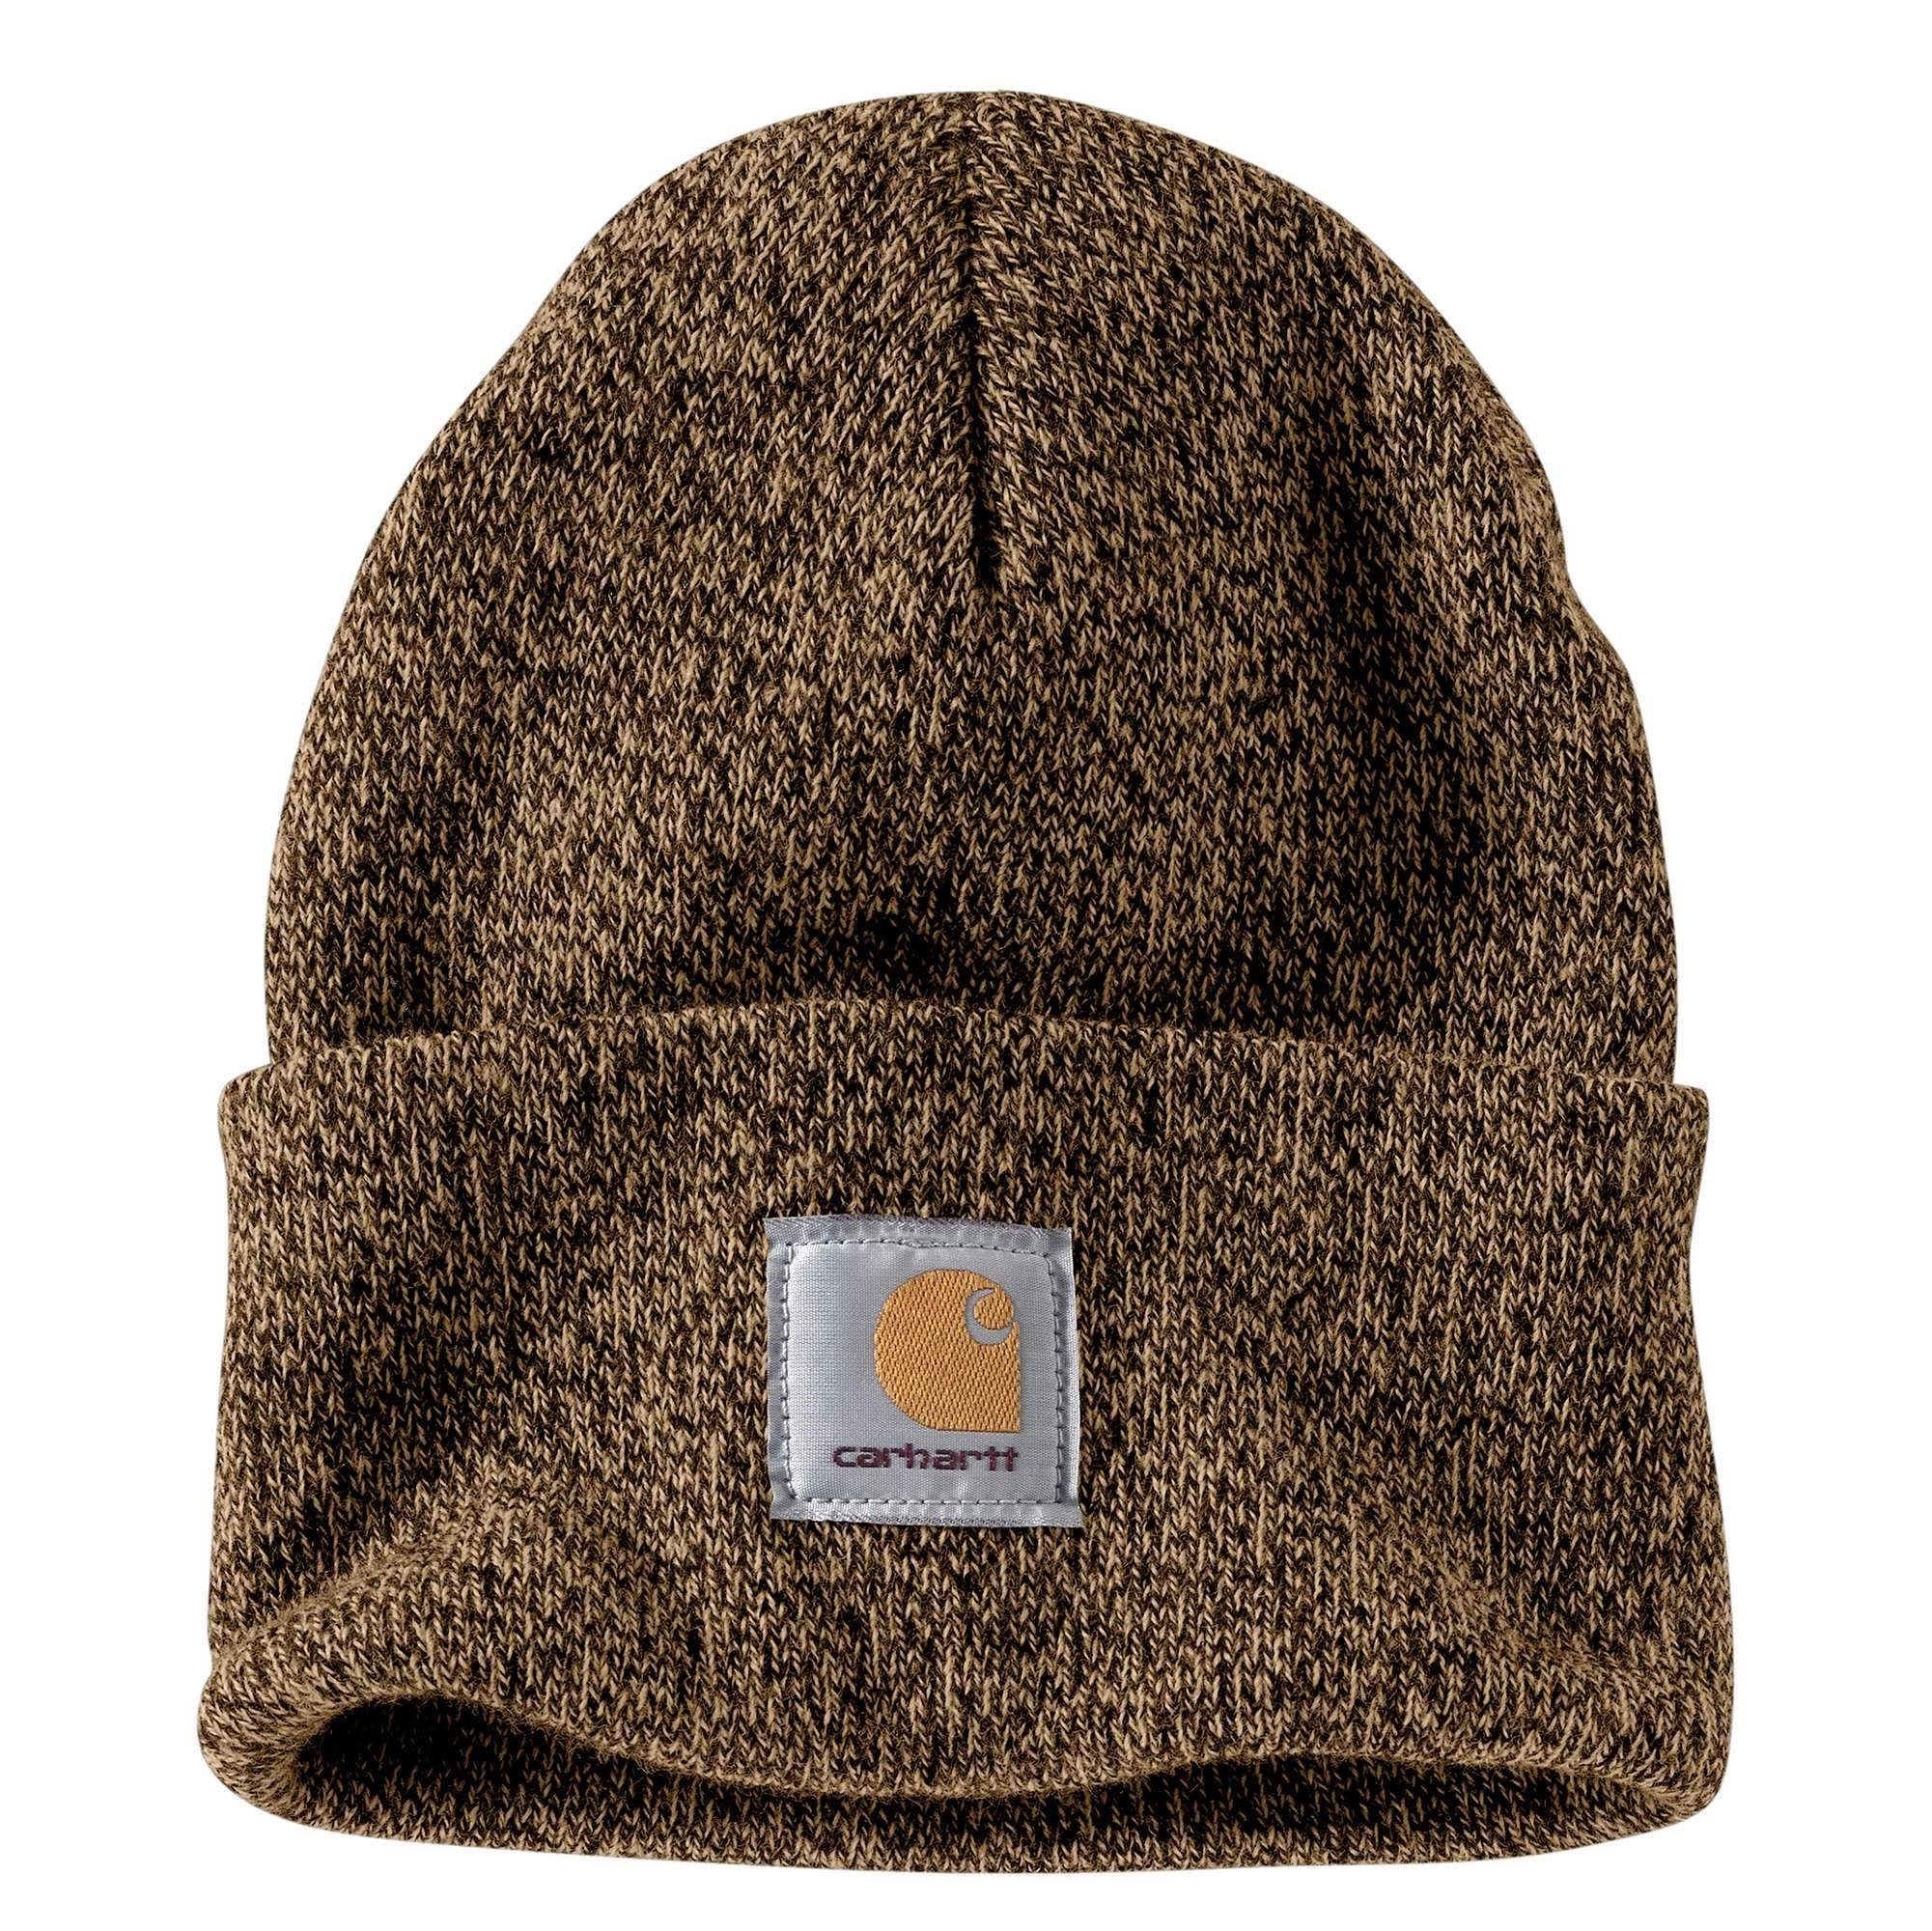 Carhartt Men's Acrylic Watch Hat - Dark Brown/Sandstone